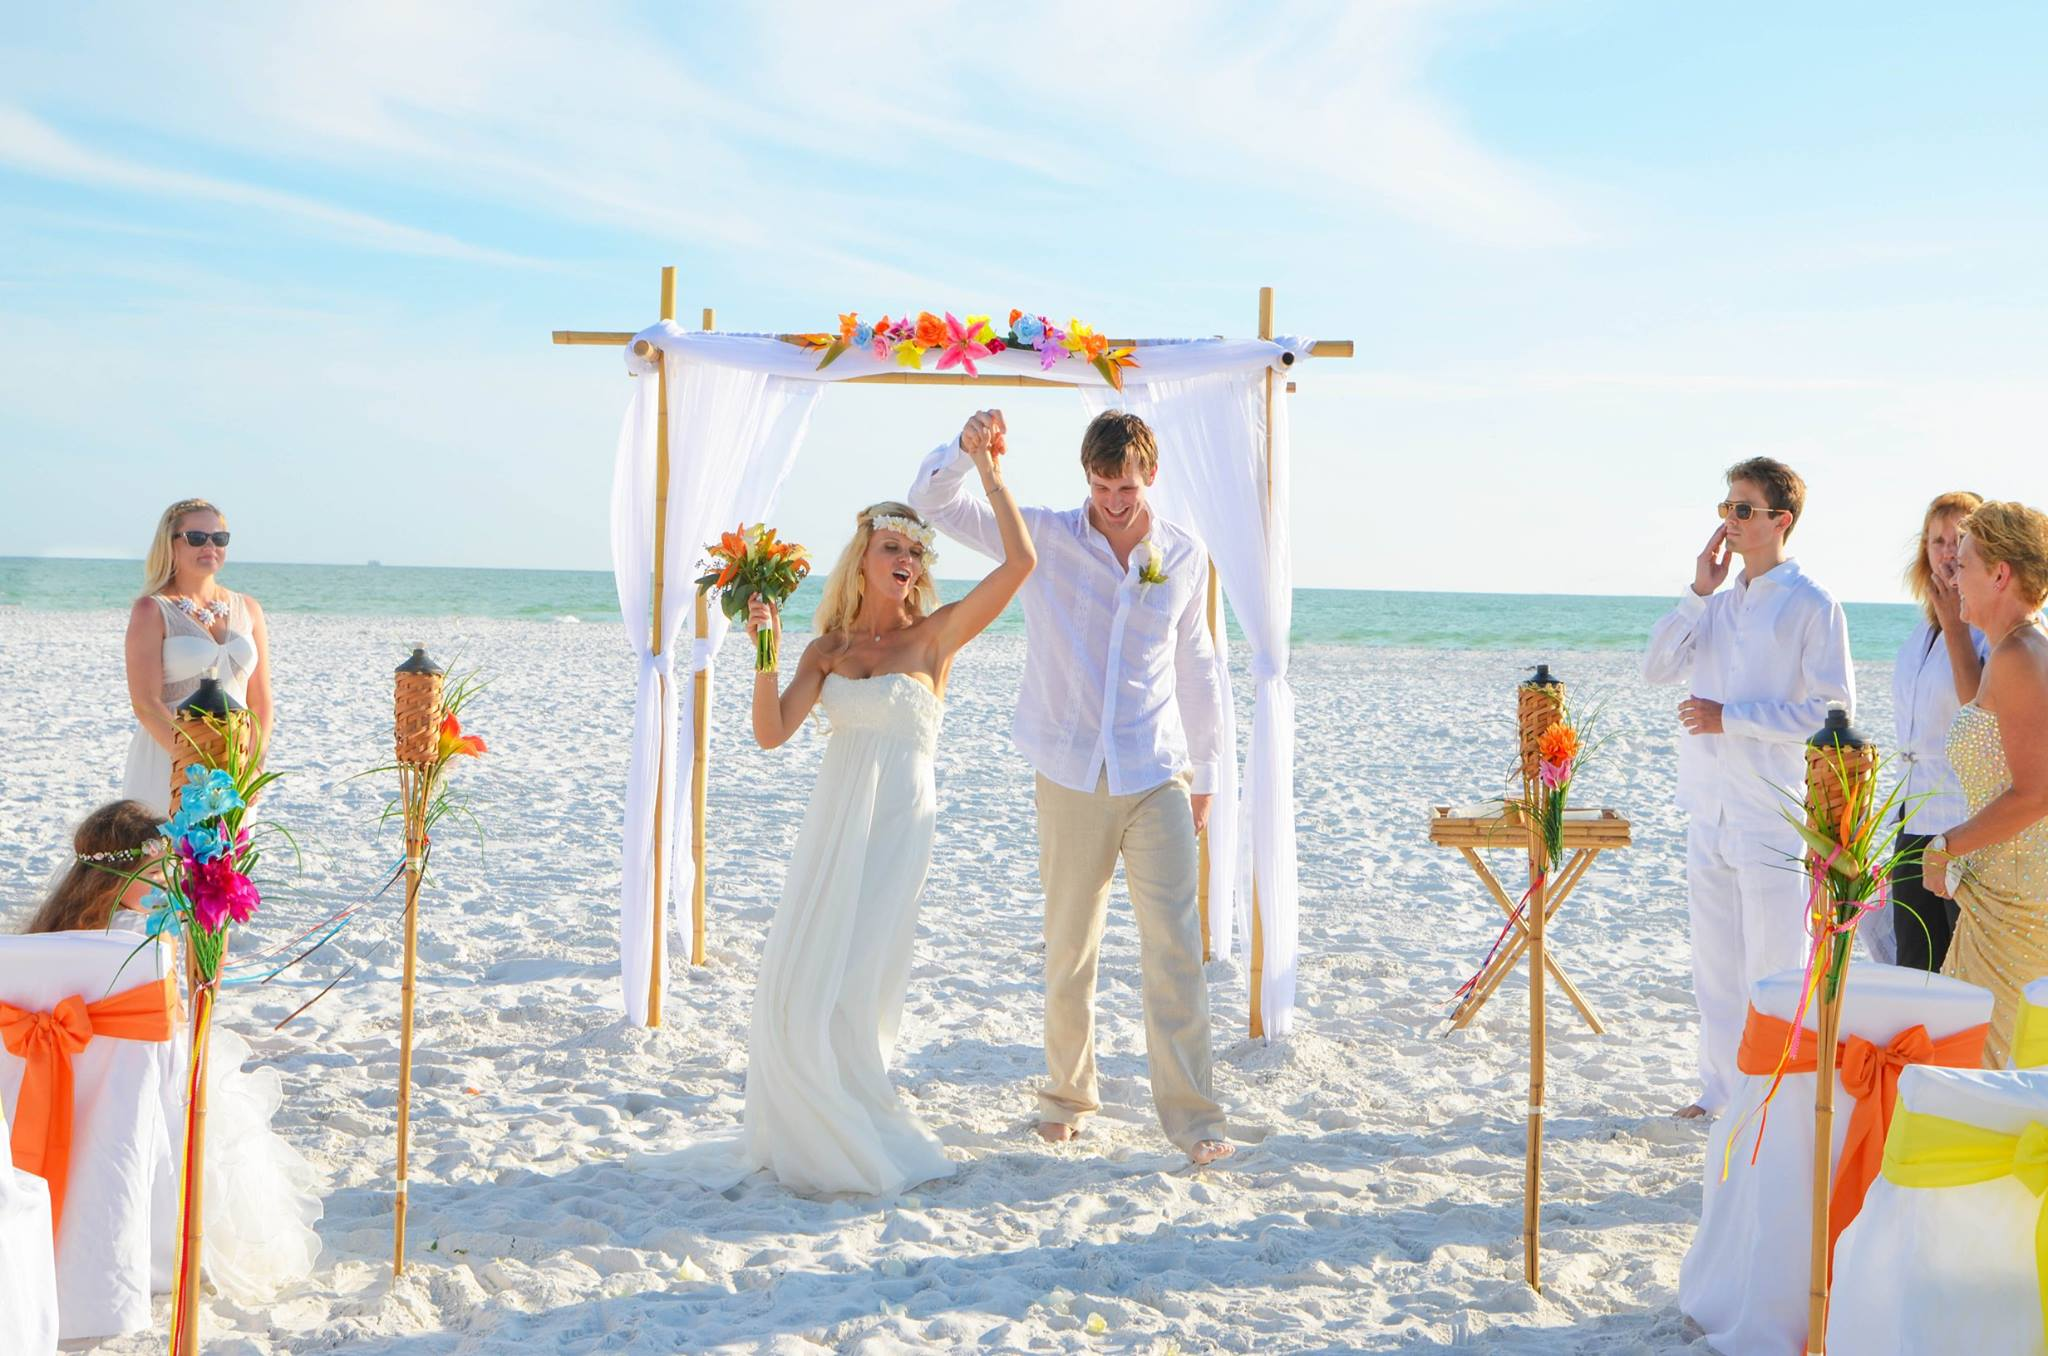 Beach Wedding Planner Archives   Page 18 of 18   Florida Beach Weddings